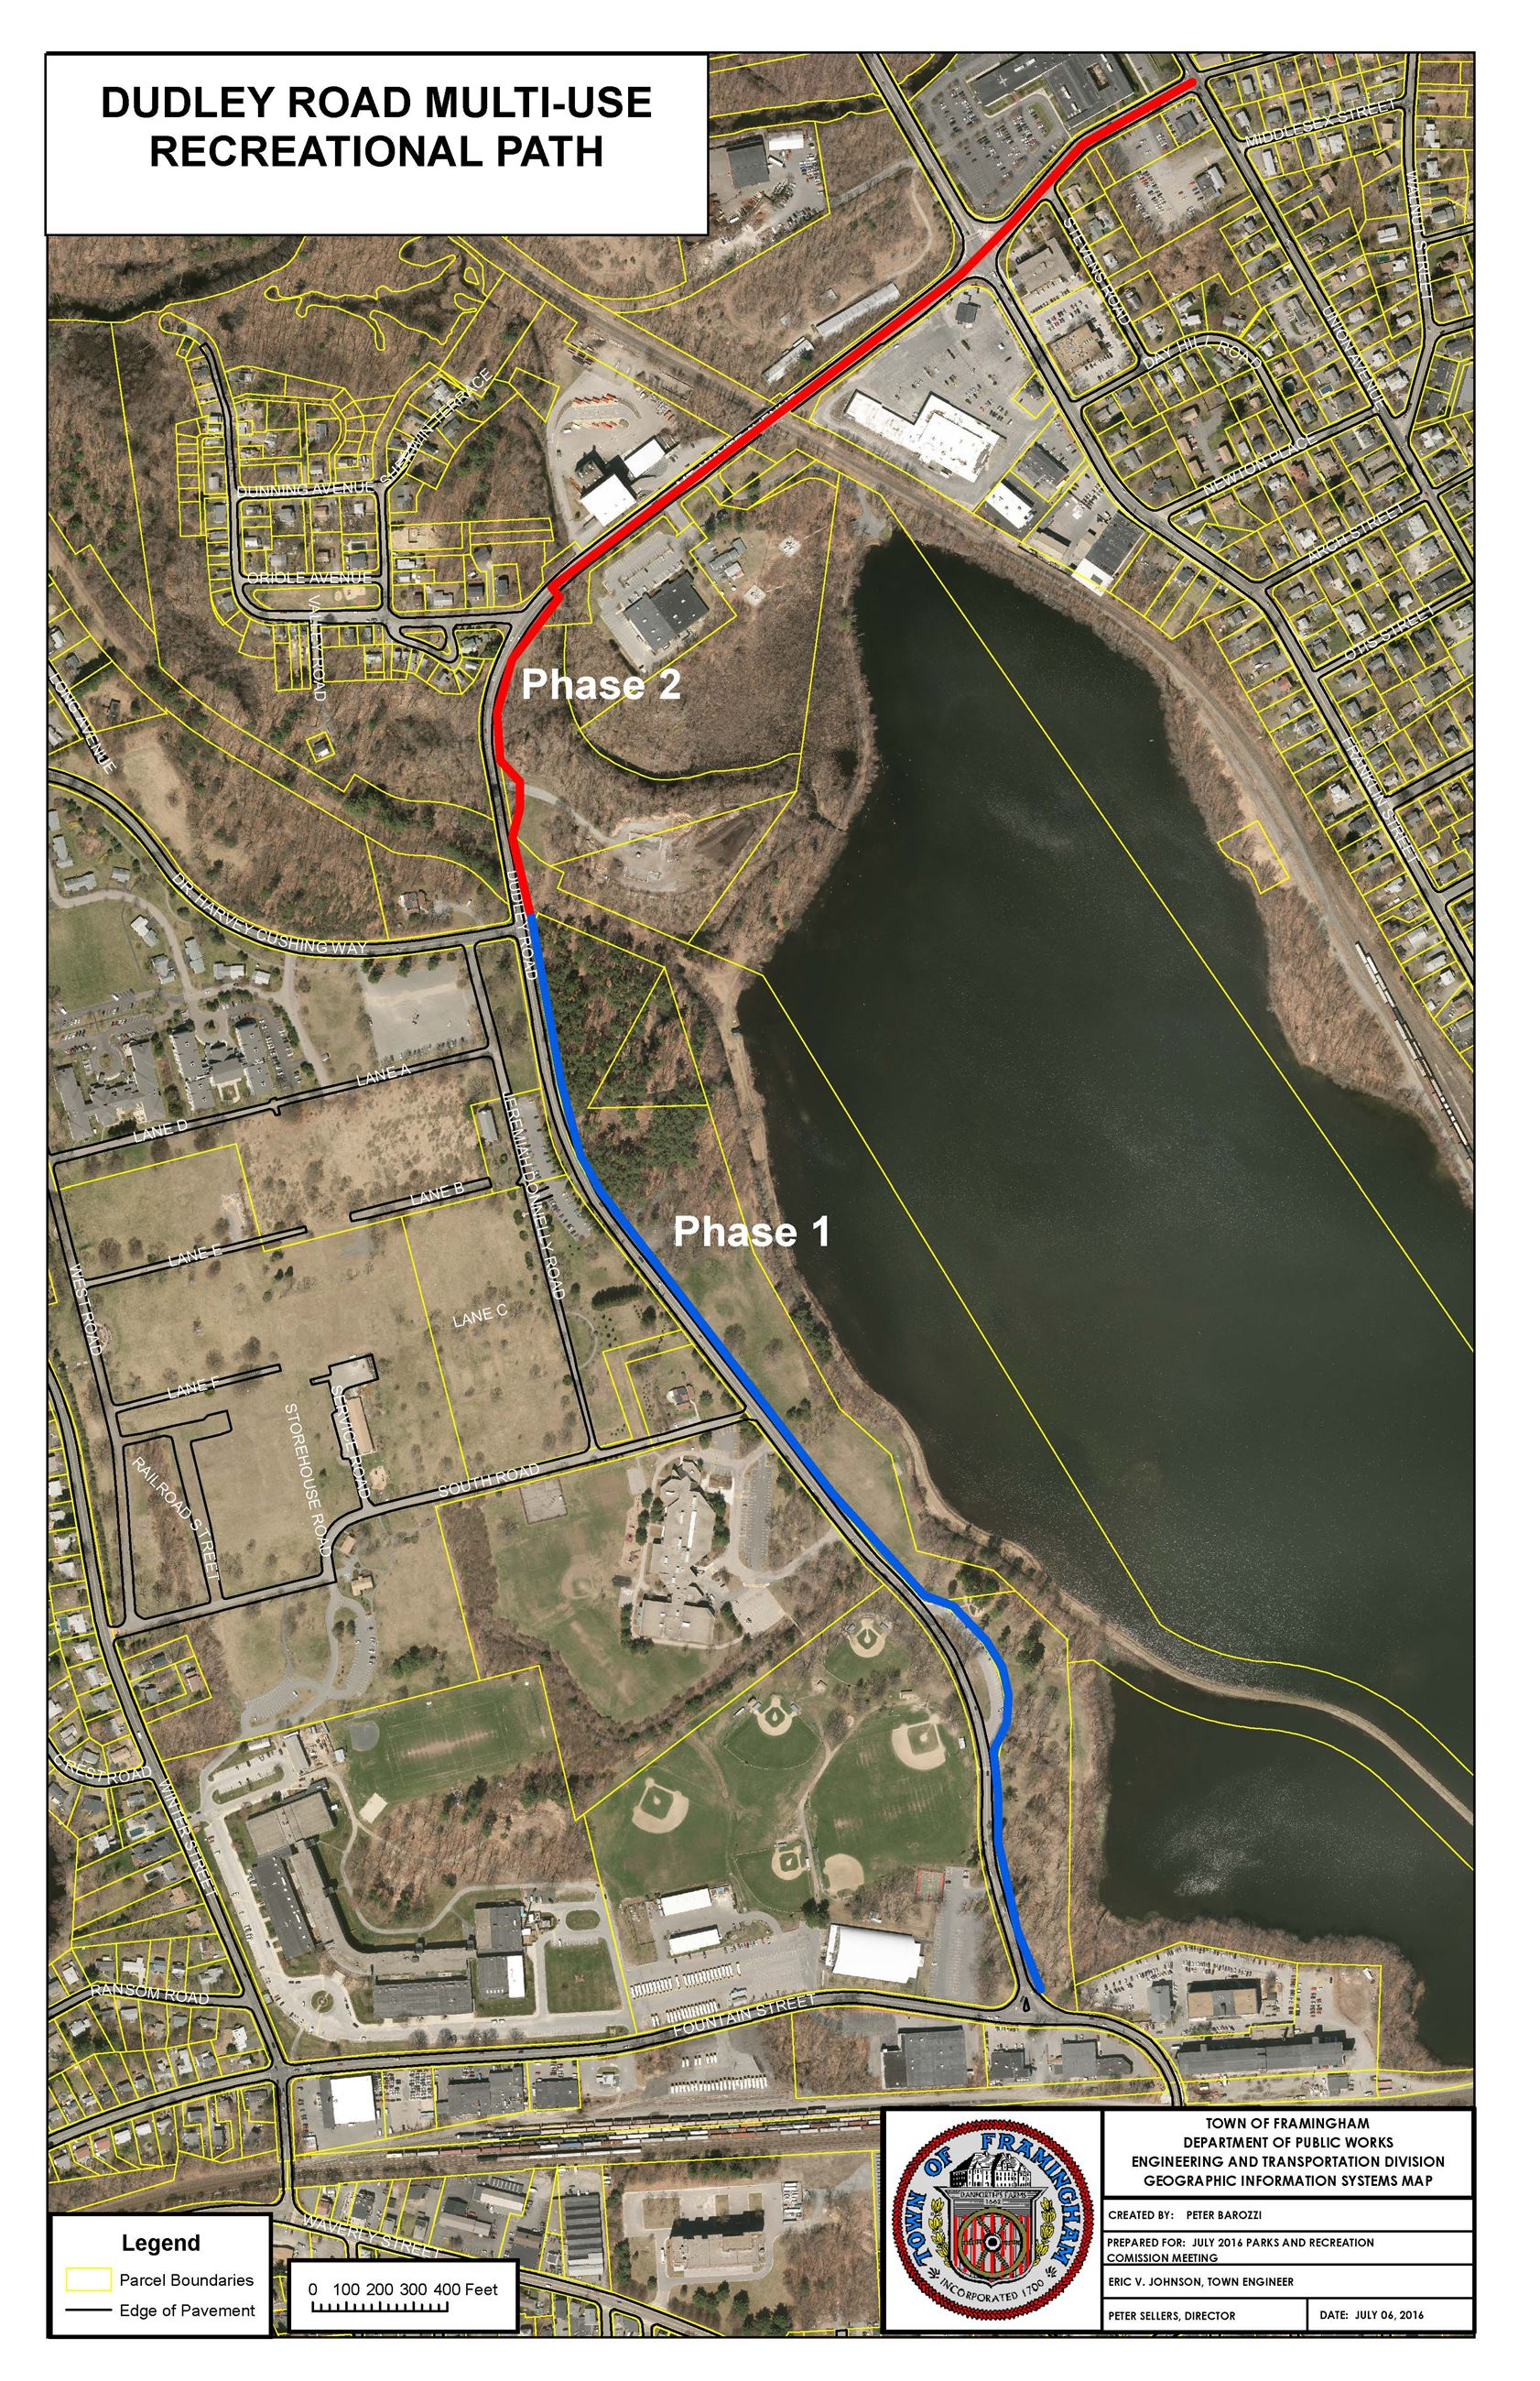 Dudley Road Multi-use Path - Approximate Phasing